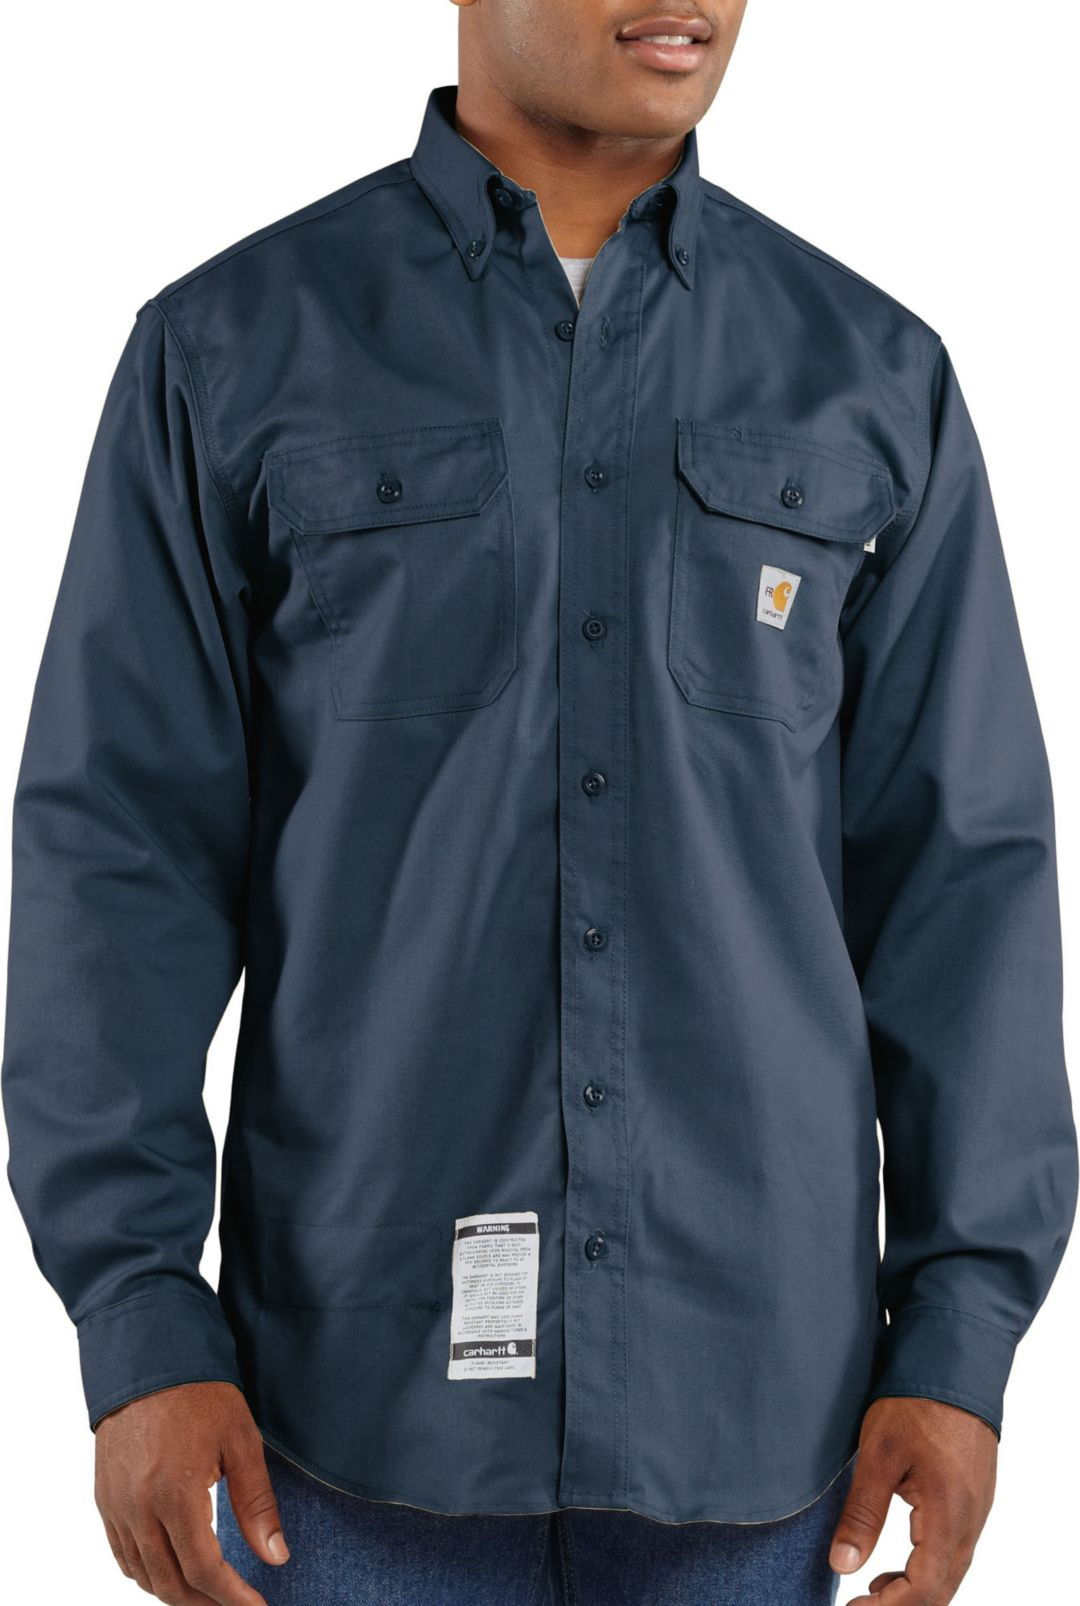 8ebdf4ceebd6 Carhartt Men's Flame Resistant Twill Long Sleeve Work Shirt | DICK'S ...